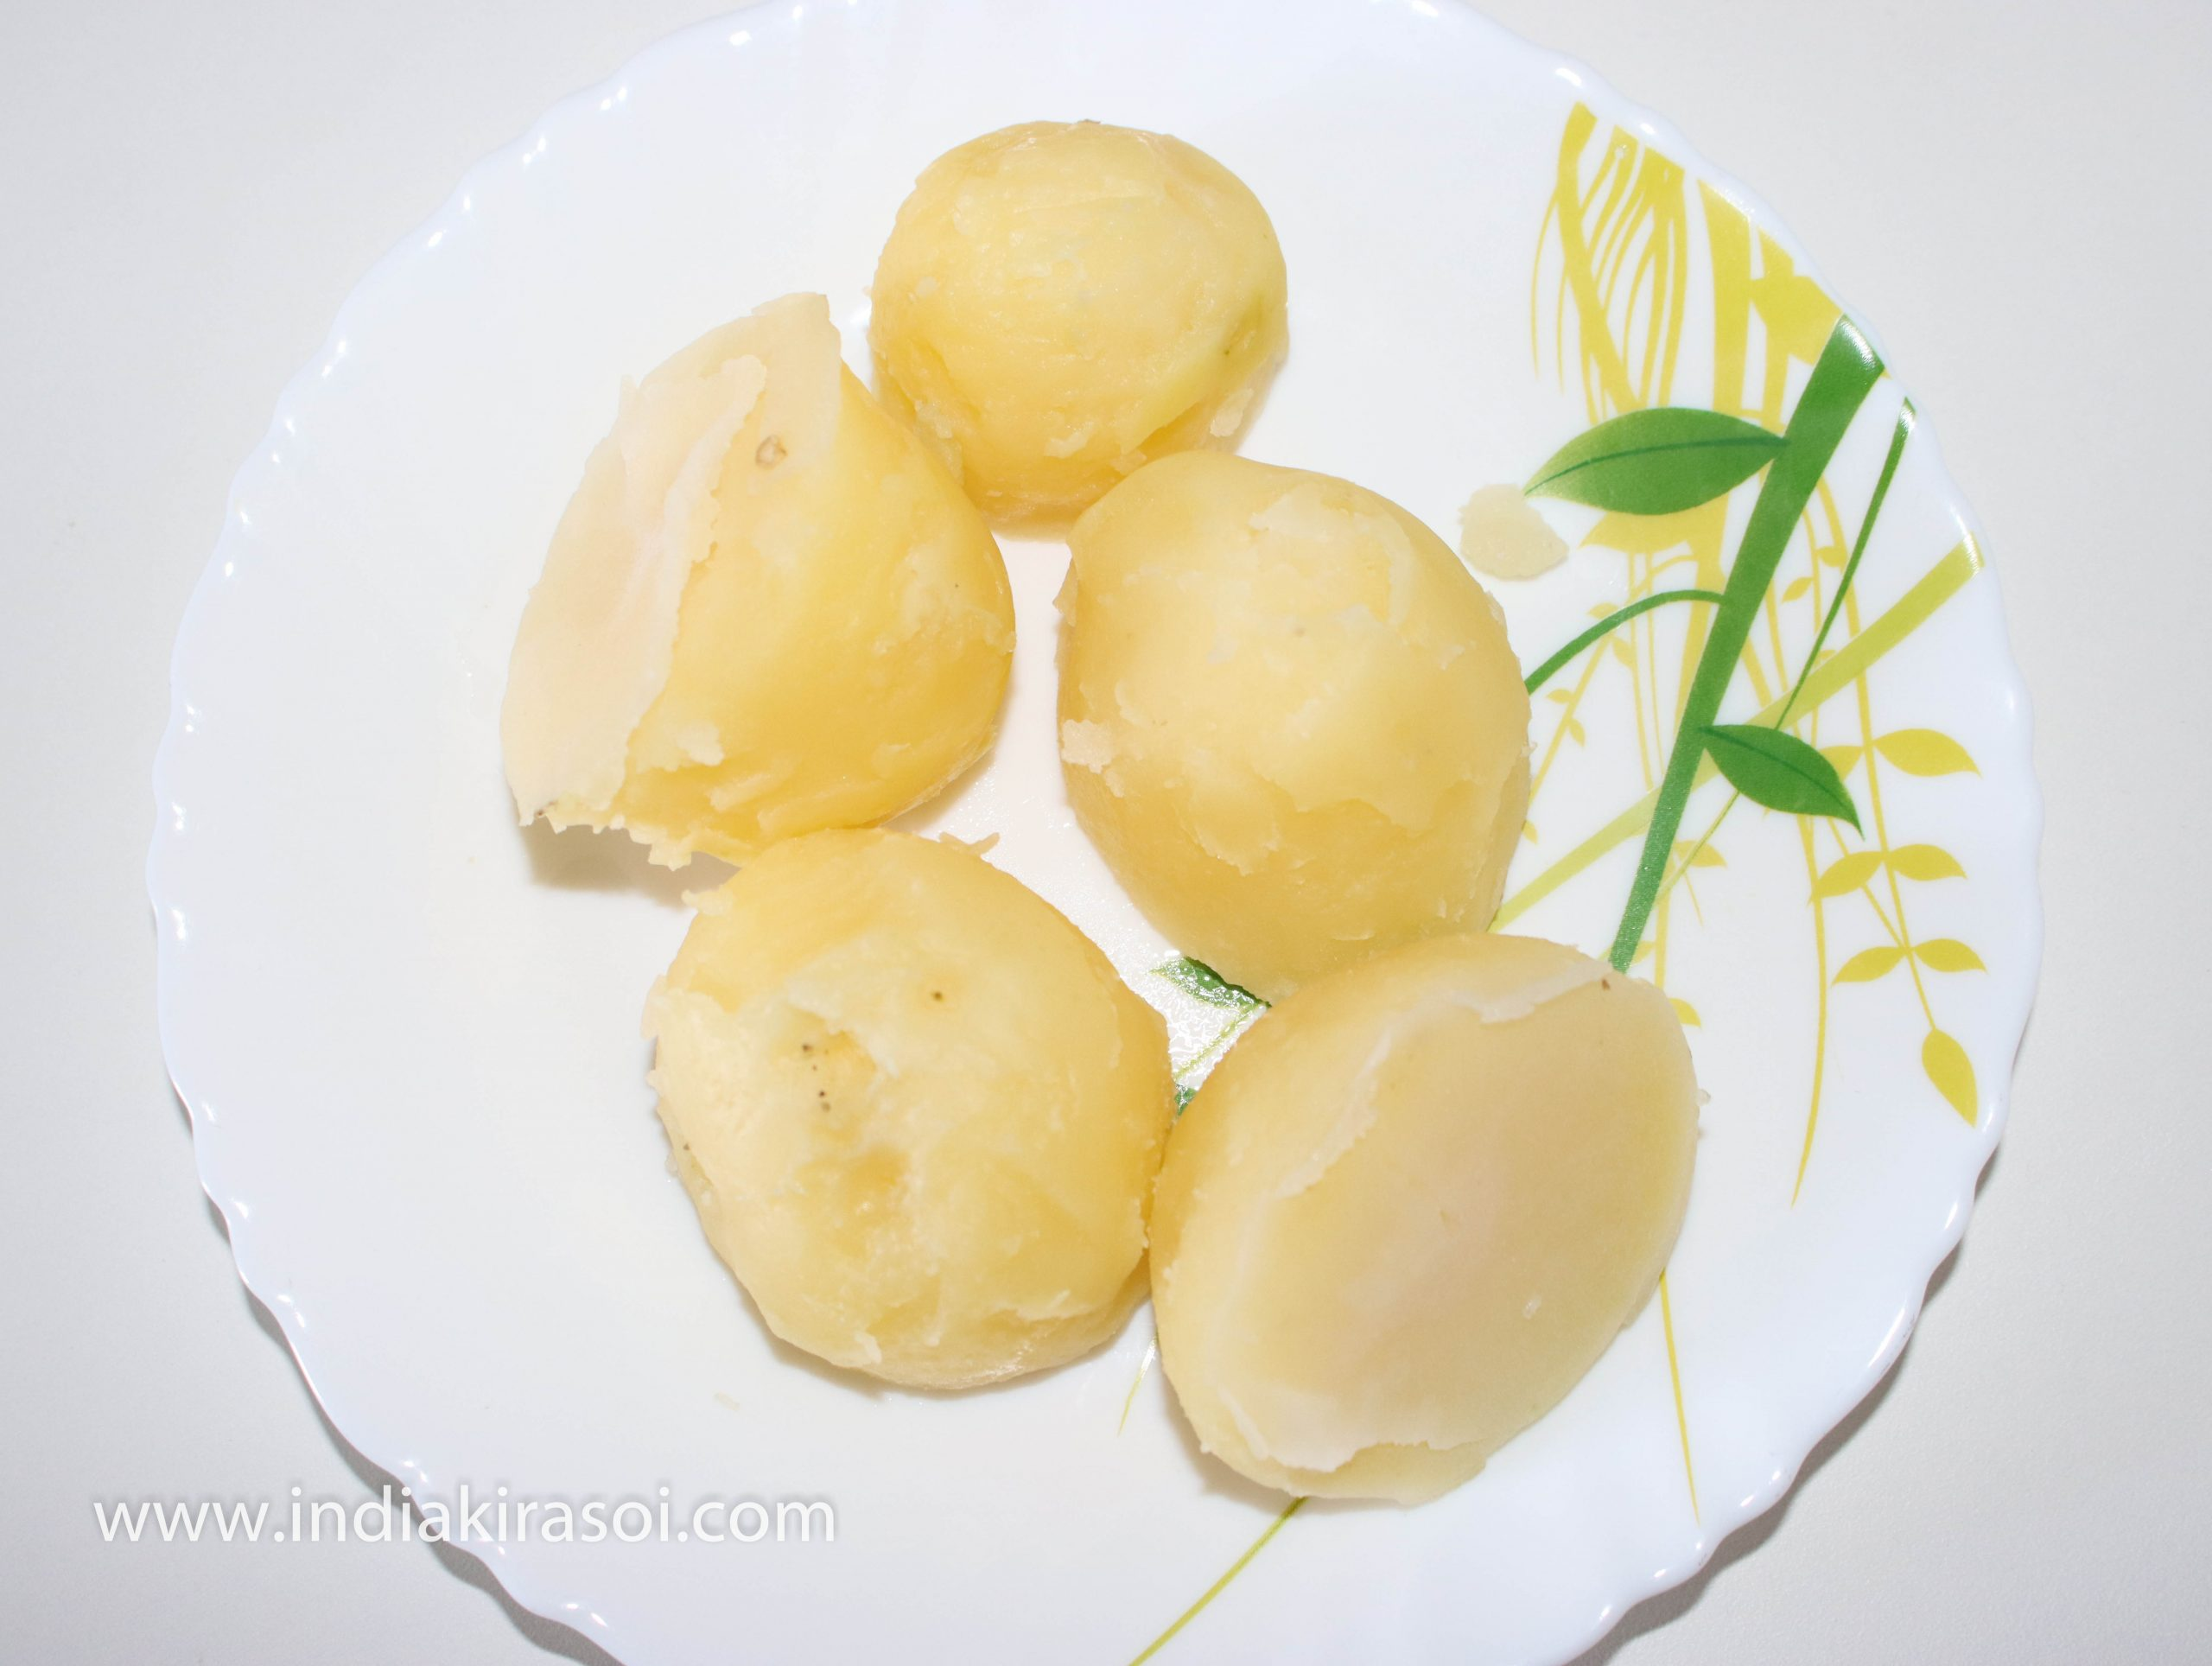 Now we will make potato stuffing. For that we will take 200 grams of potato and boil them on the two whistle of pressure cooker. Once the gas released from the pressure cooker. Open the pressure cooker and peel the potato.